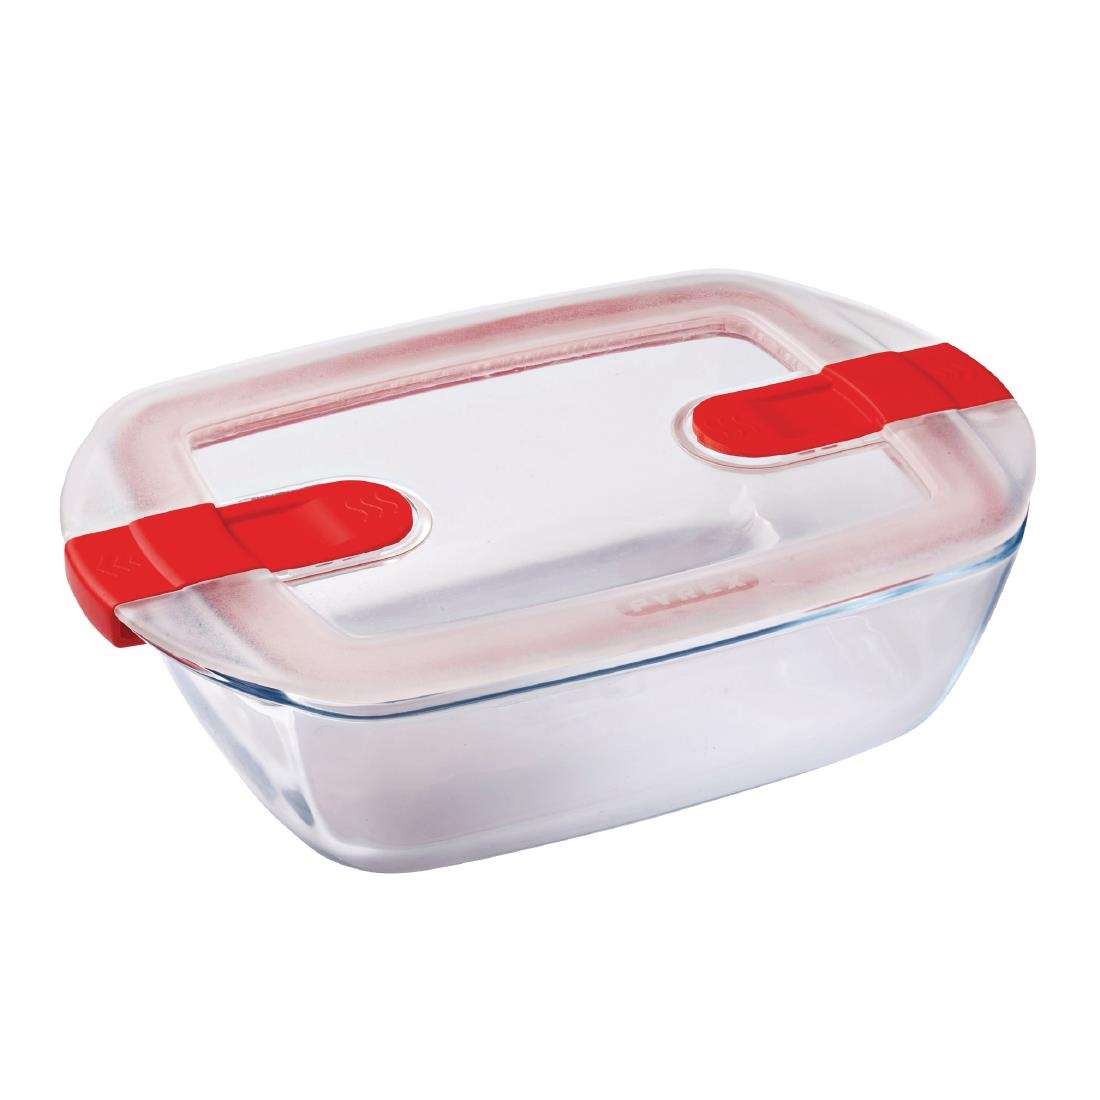 Image of Pyrex Cook and Heat Rectangular Dish with Lid 1Ltr